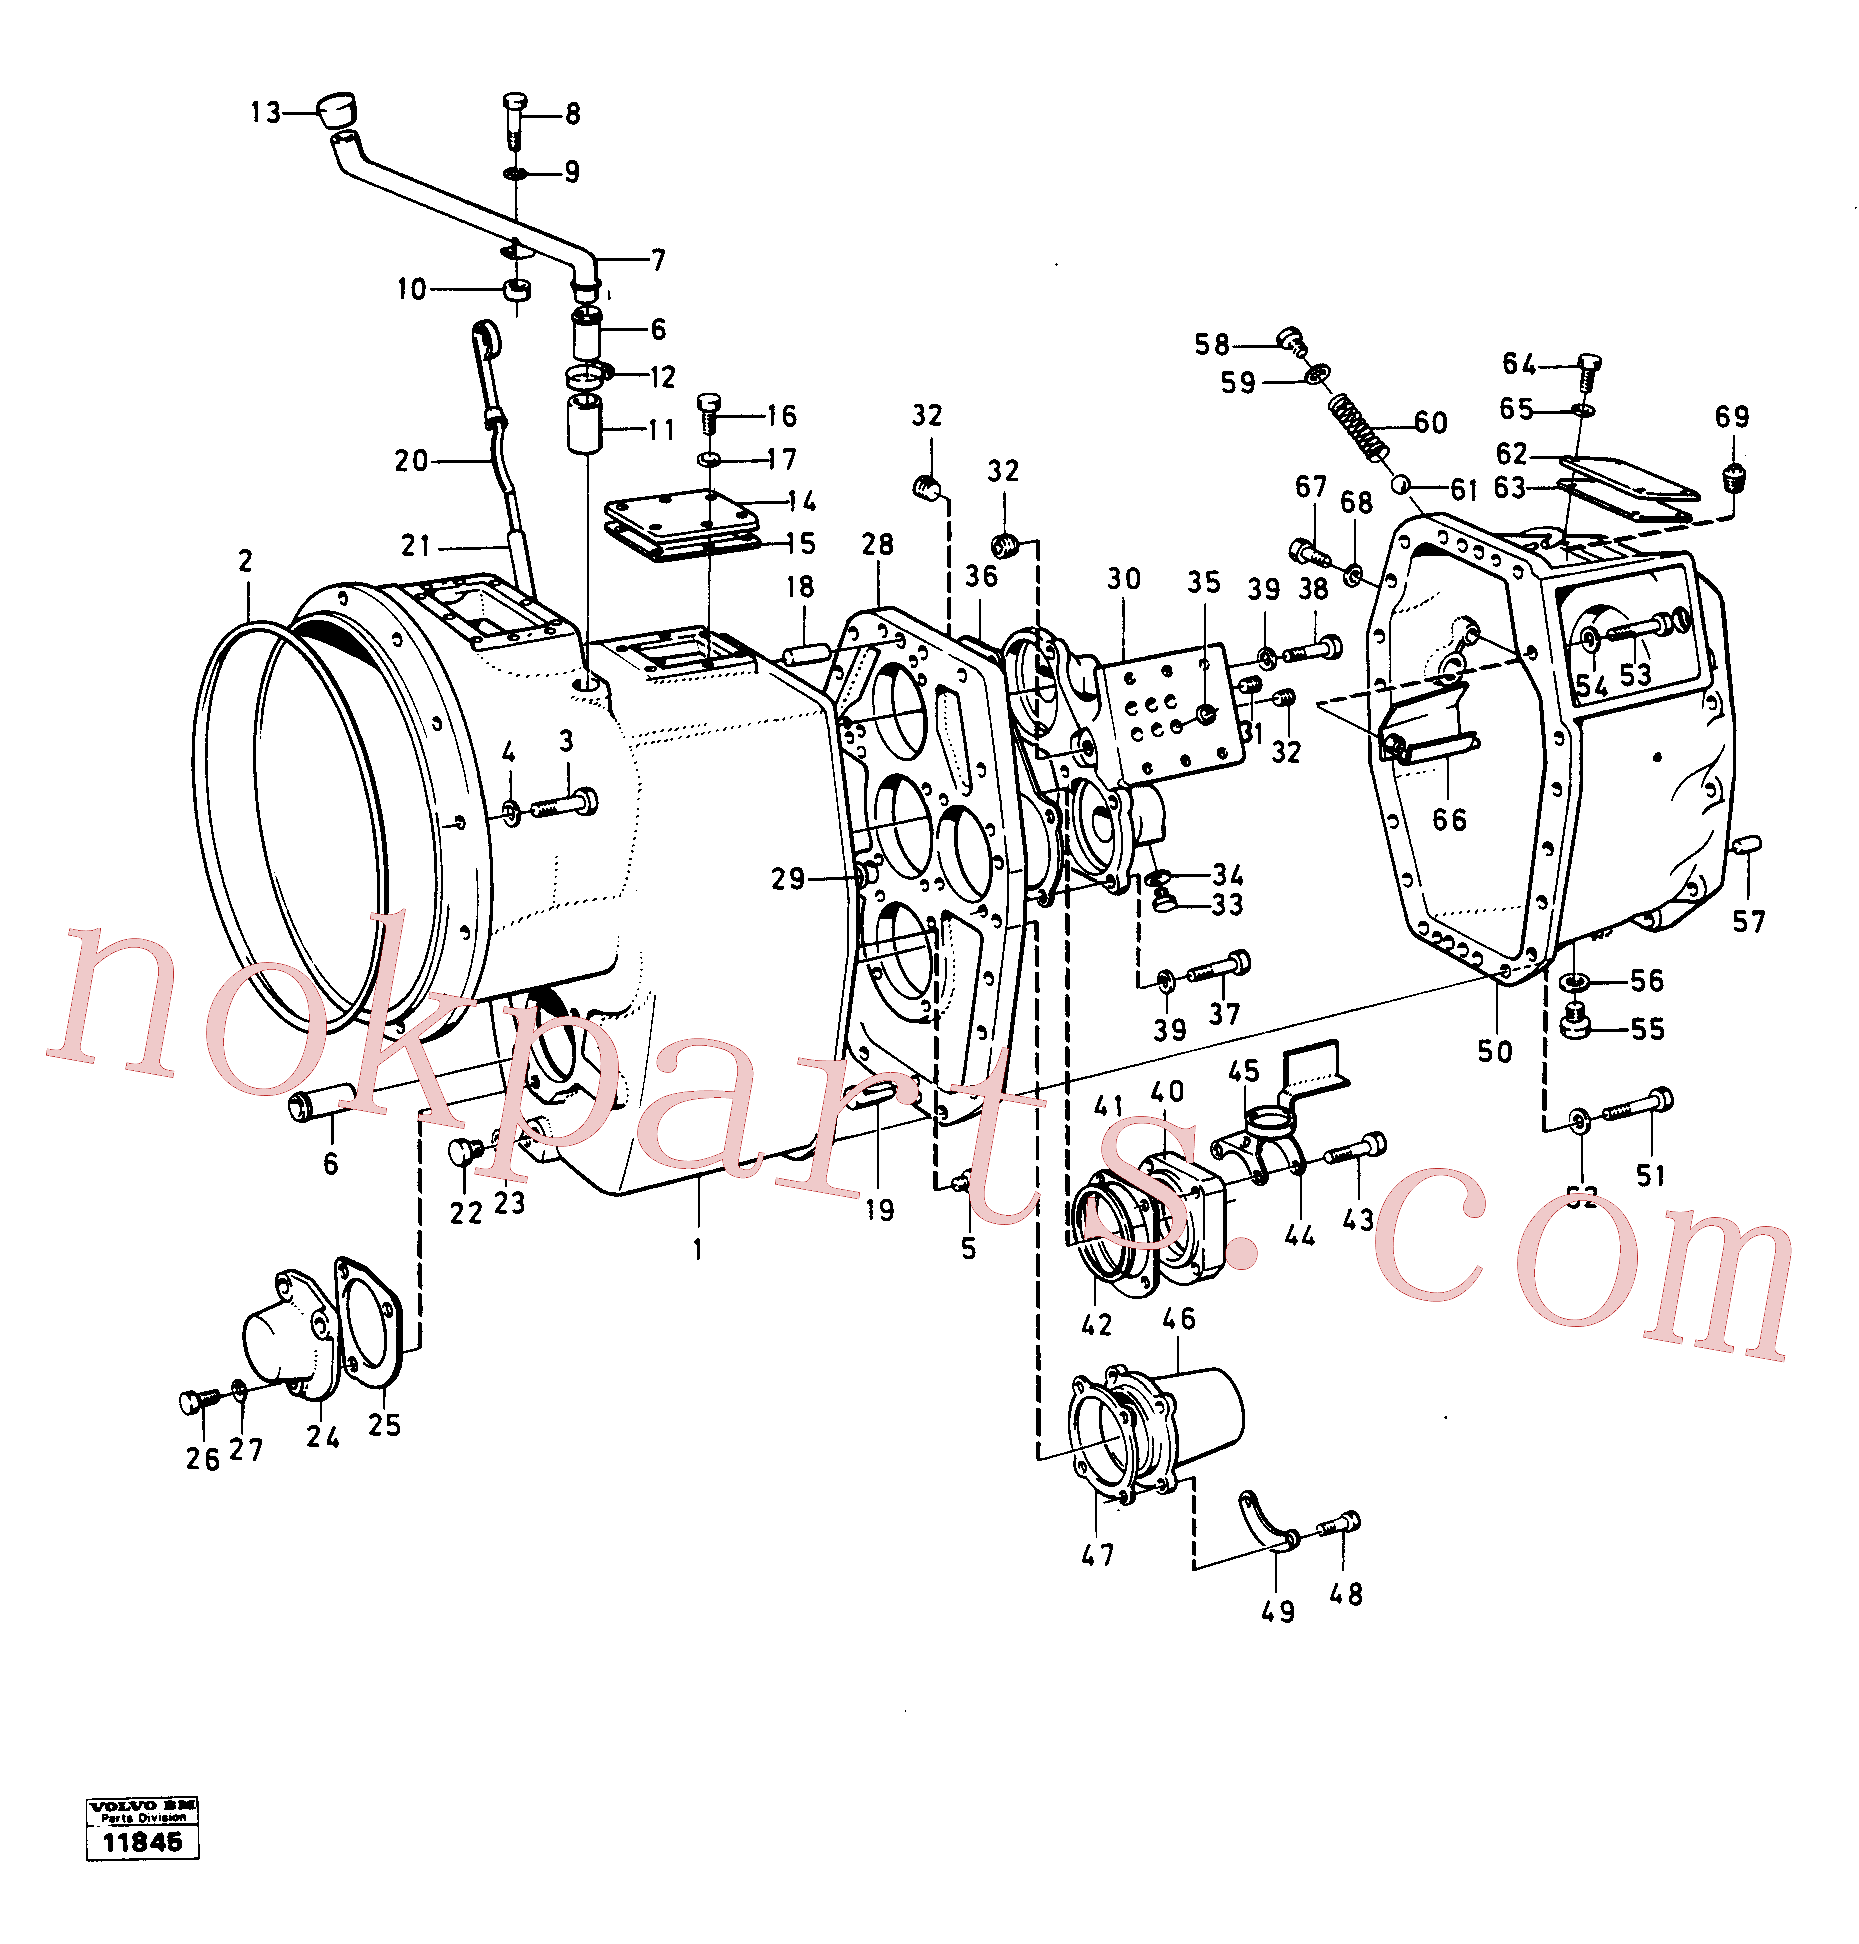 VOE14014888 for Volvo Housing,covers and boltings(11845 assembly)